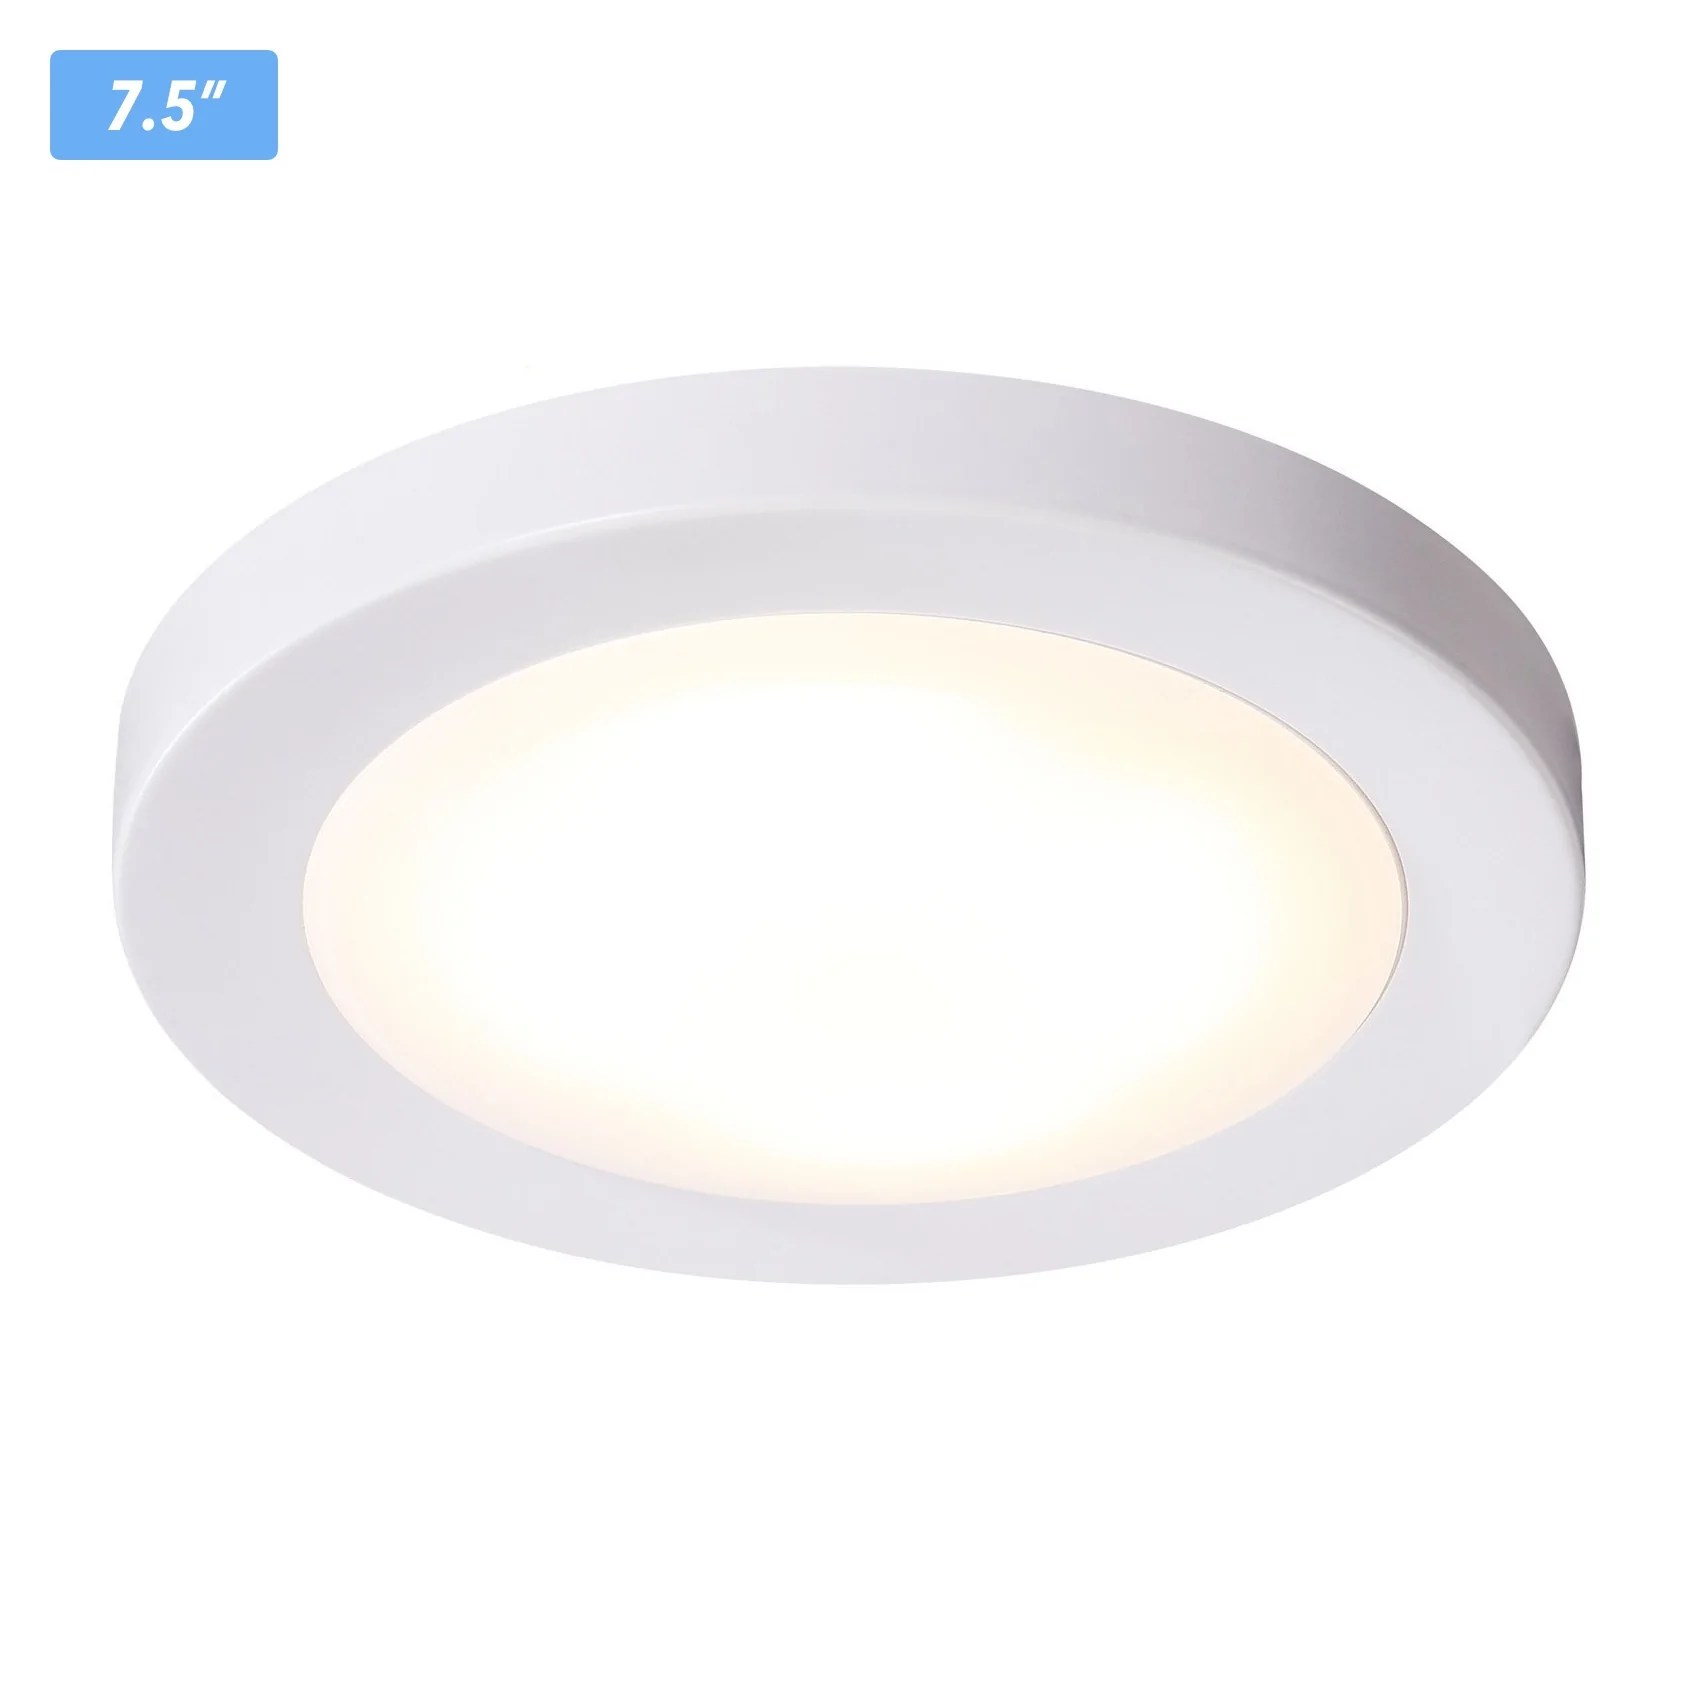 Led White Flush Mount Ceiling Light 7 5 Inch Dimmable Led White Finish Wet Location 120v 12w 840lm